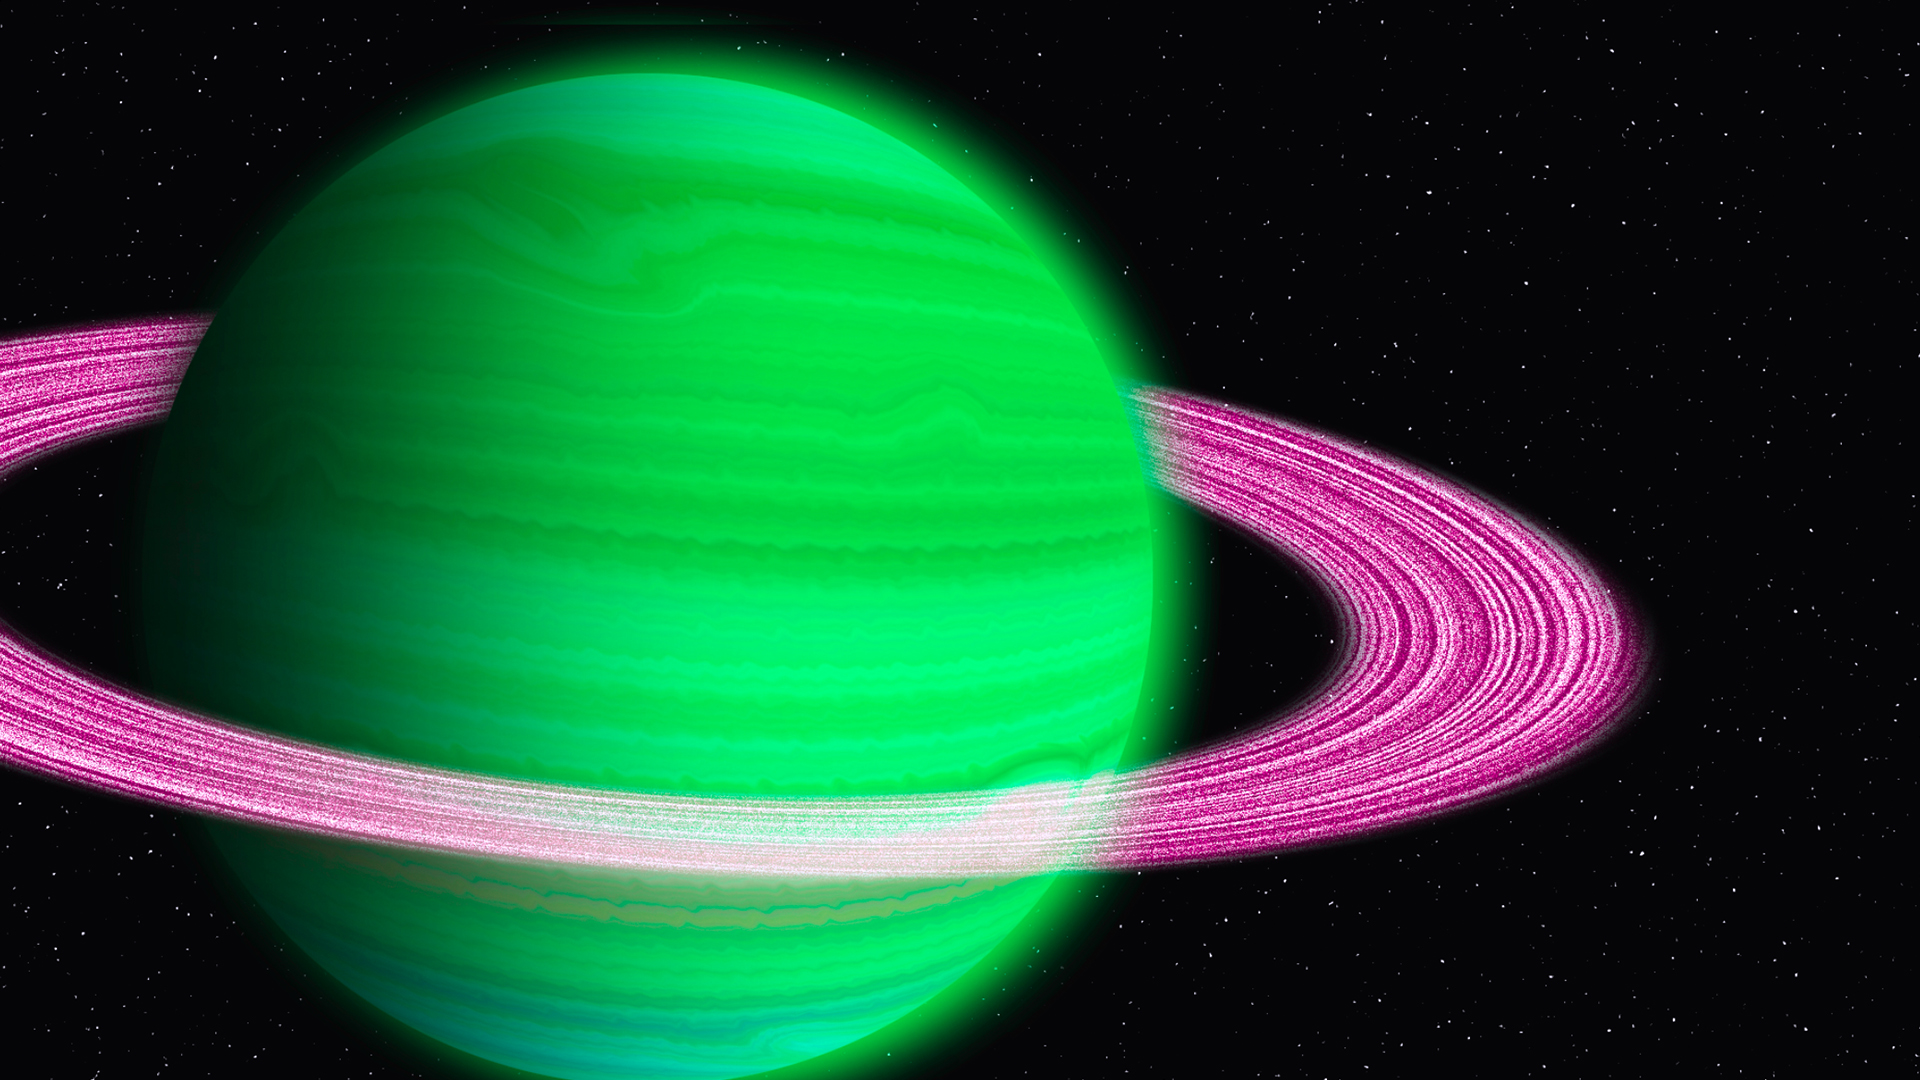 Green Planet with Pink Rings